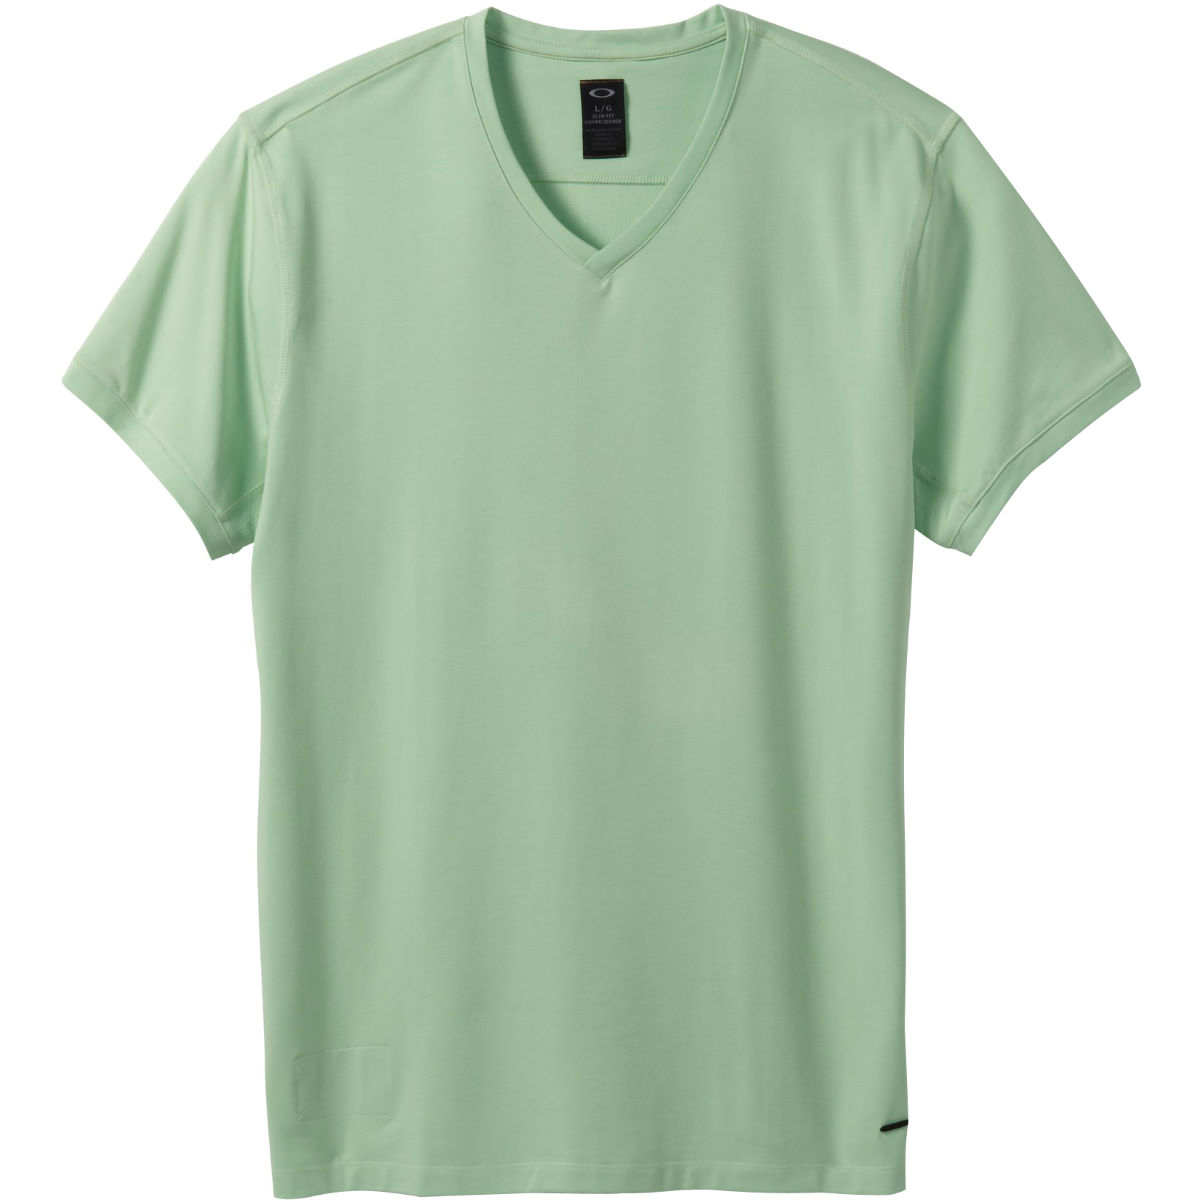 Oakley Icon V-Neck Tee - Large Pistachio Green | Tees